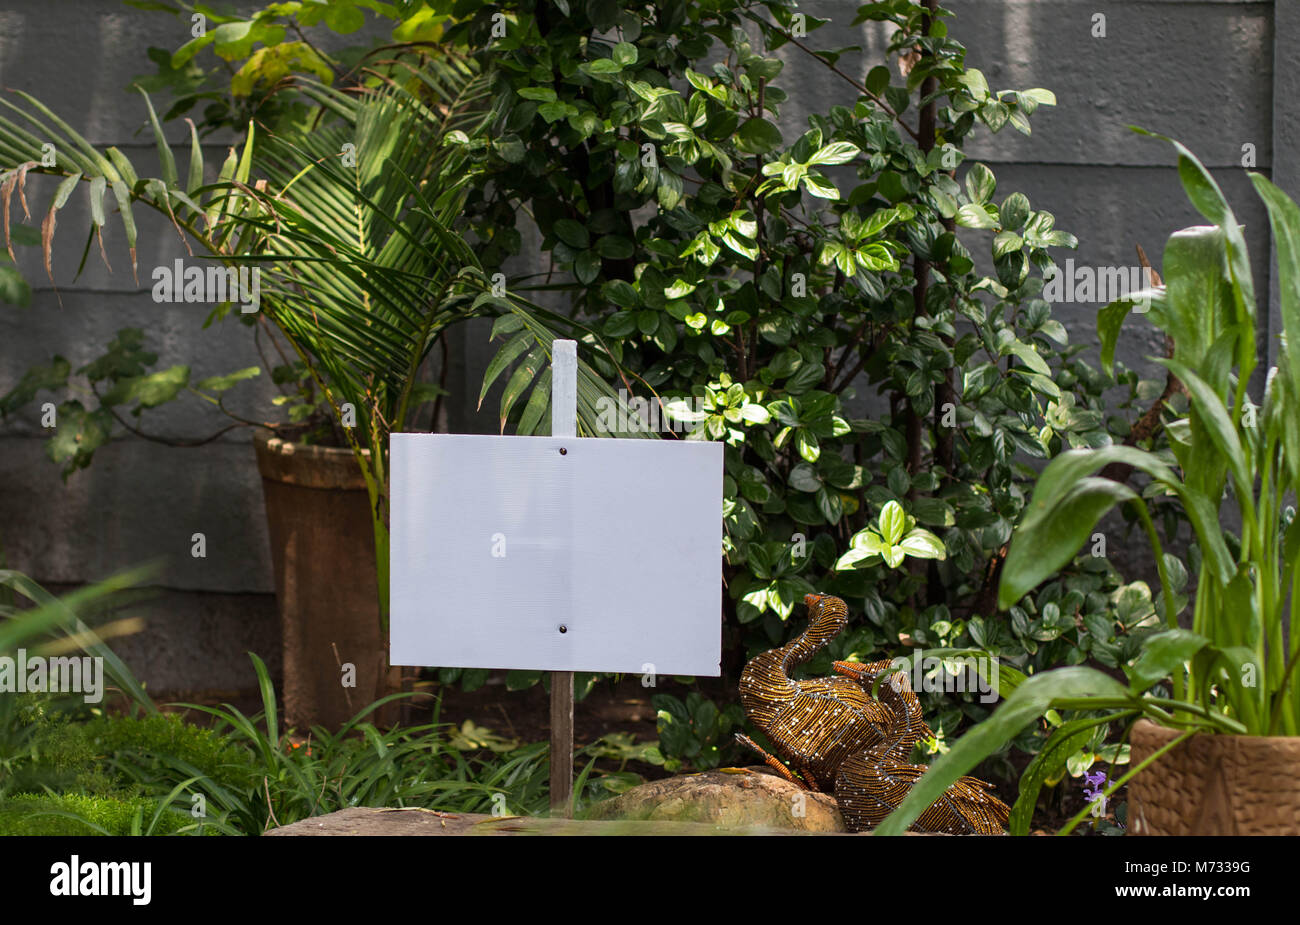 Blank white signboard to insert an own individual message on in a garden setting image in landscape format with - Stock Image